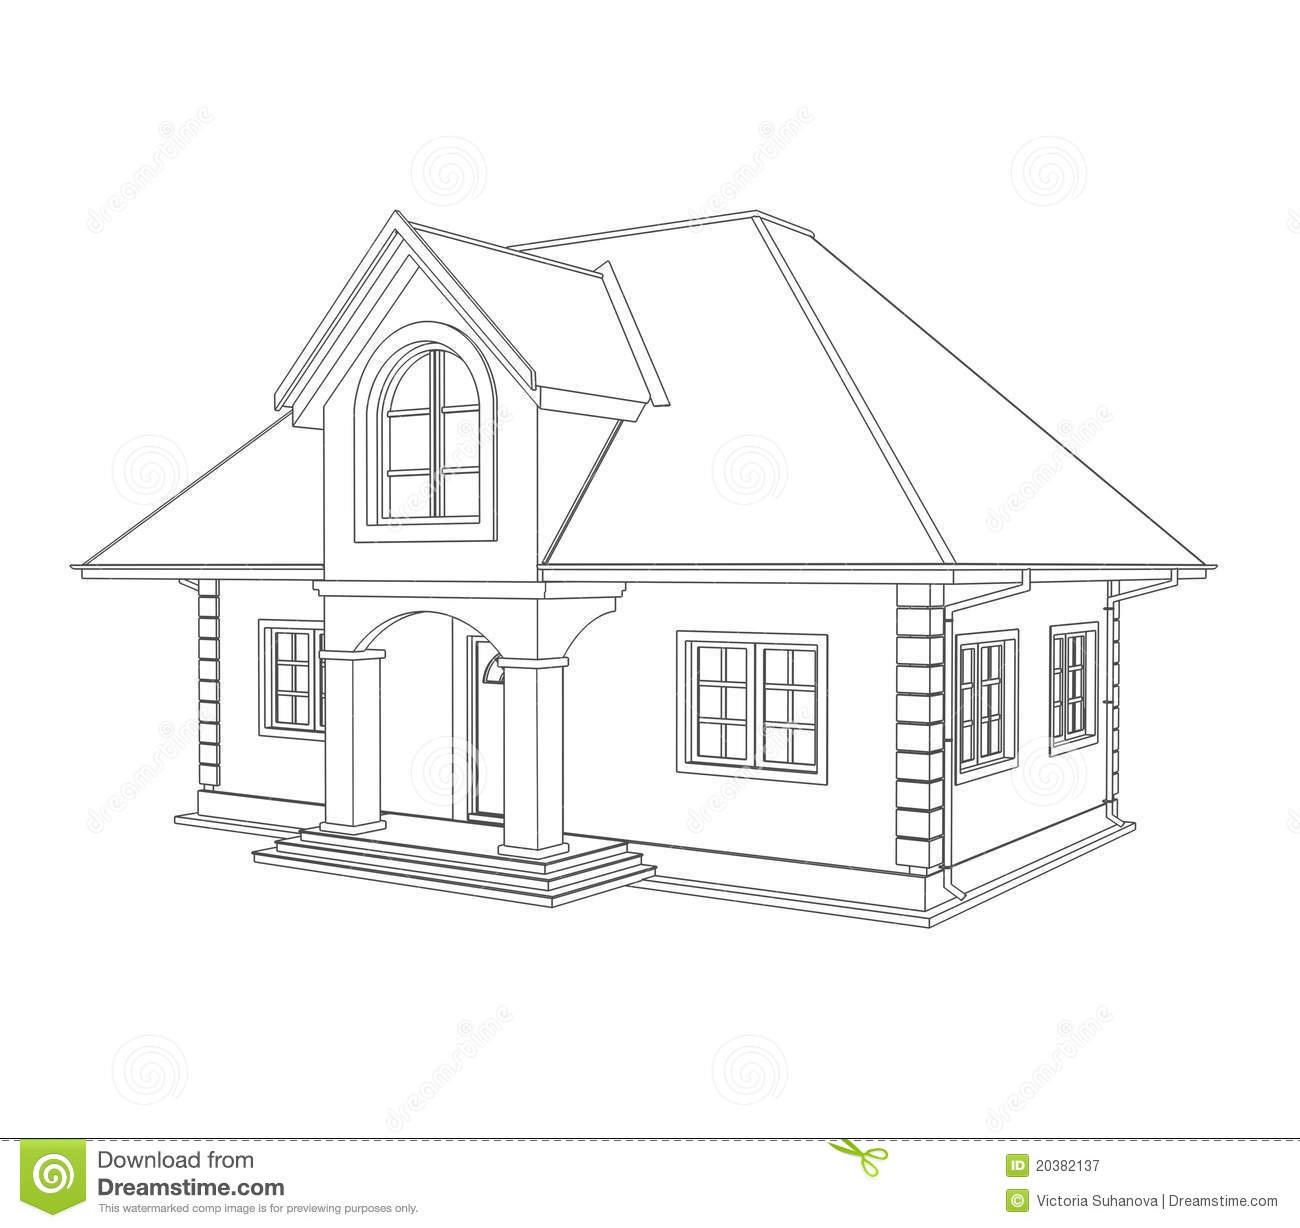 Simple house drawing for House drawing easy